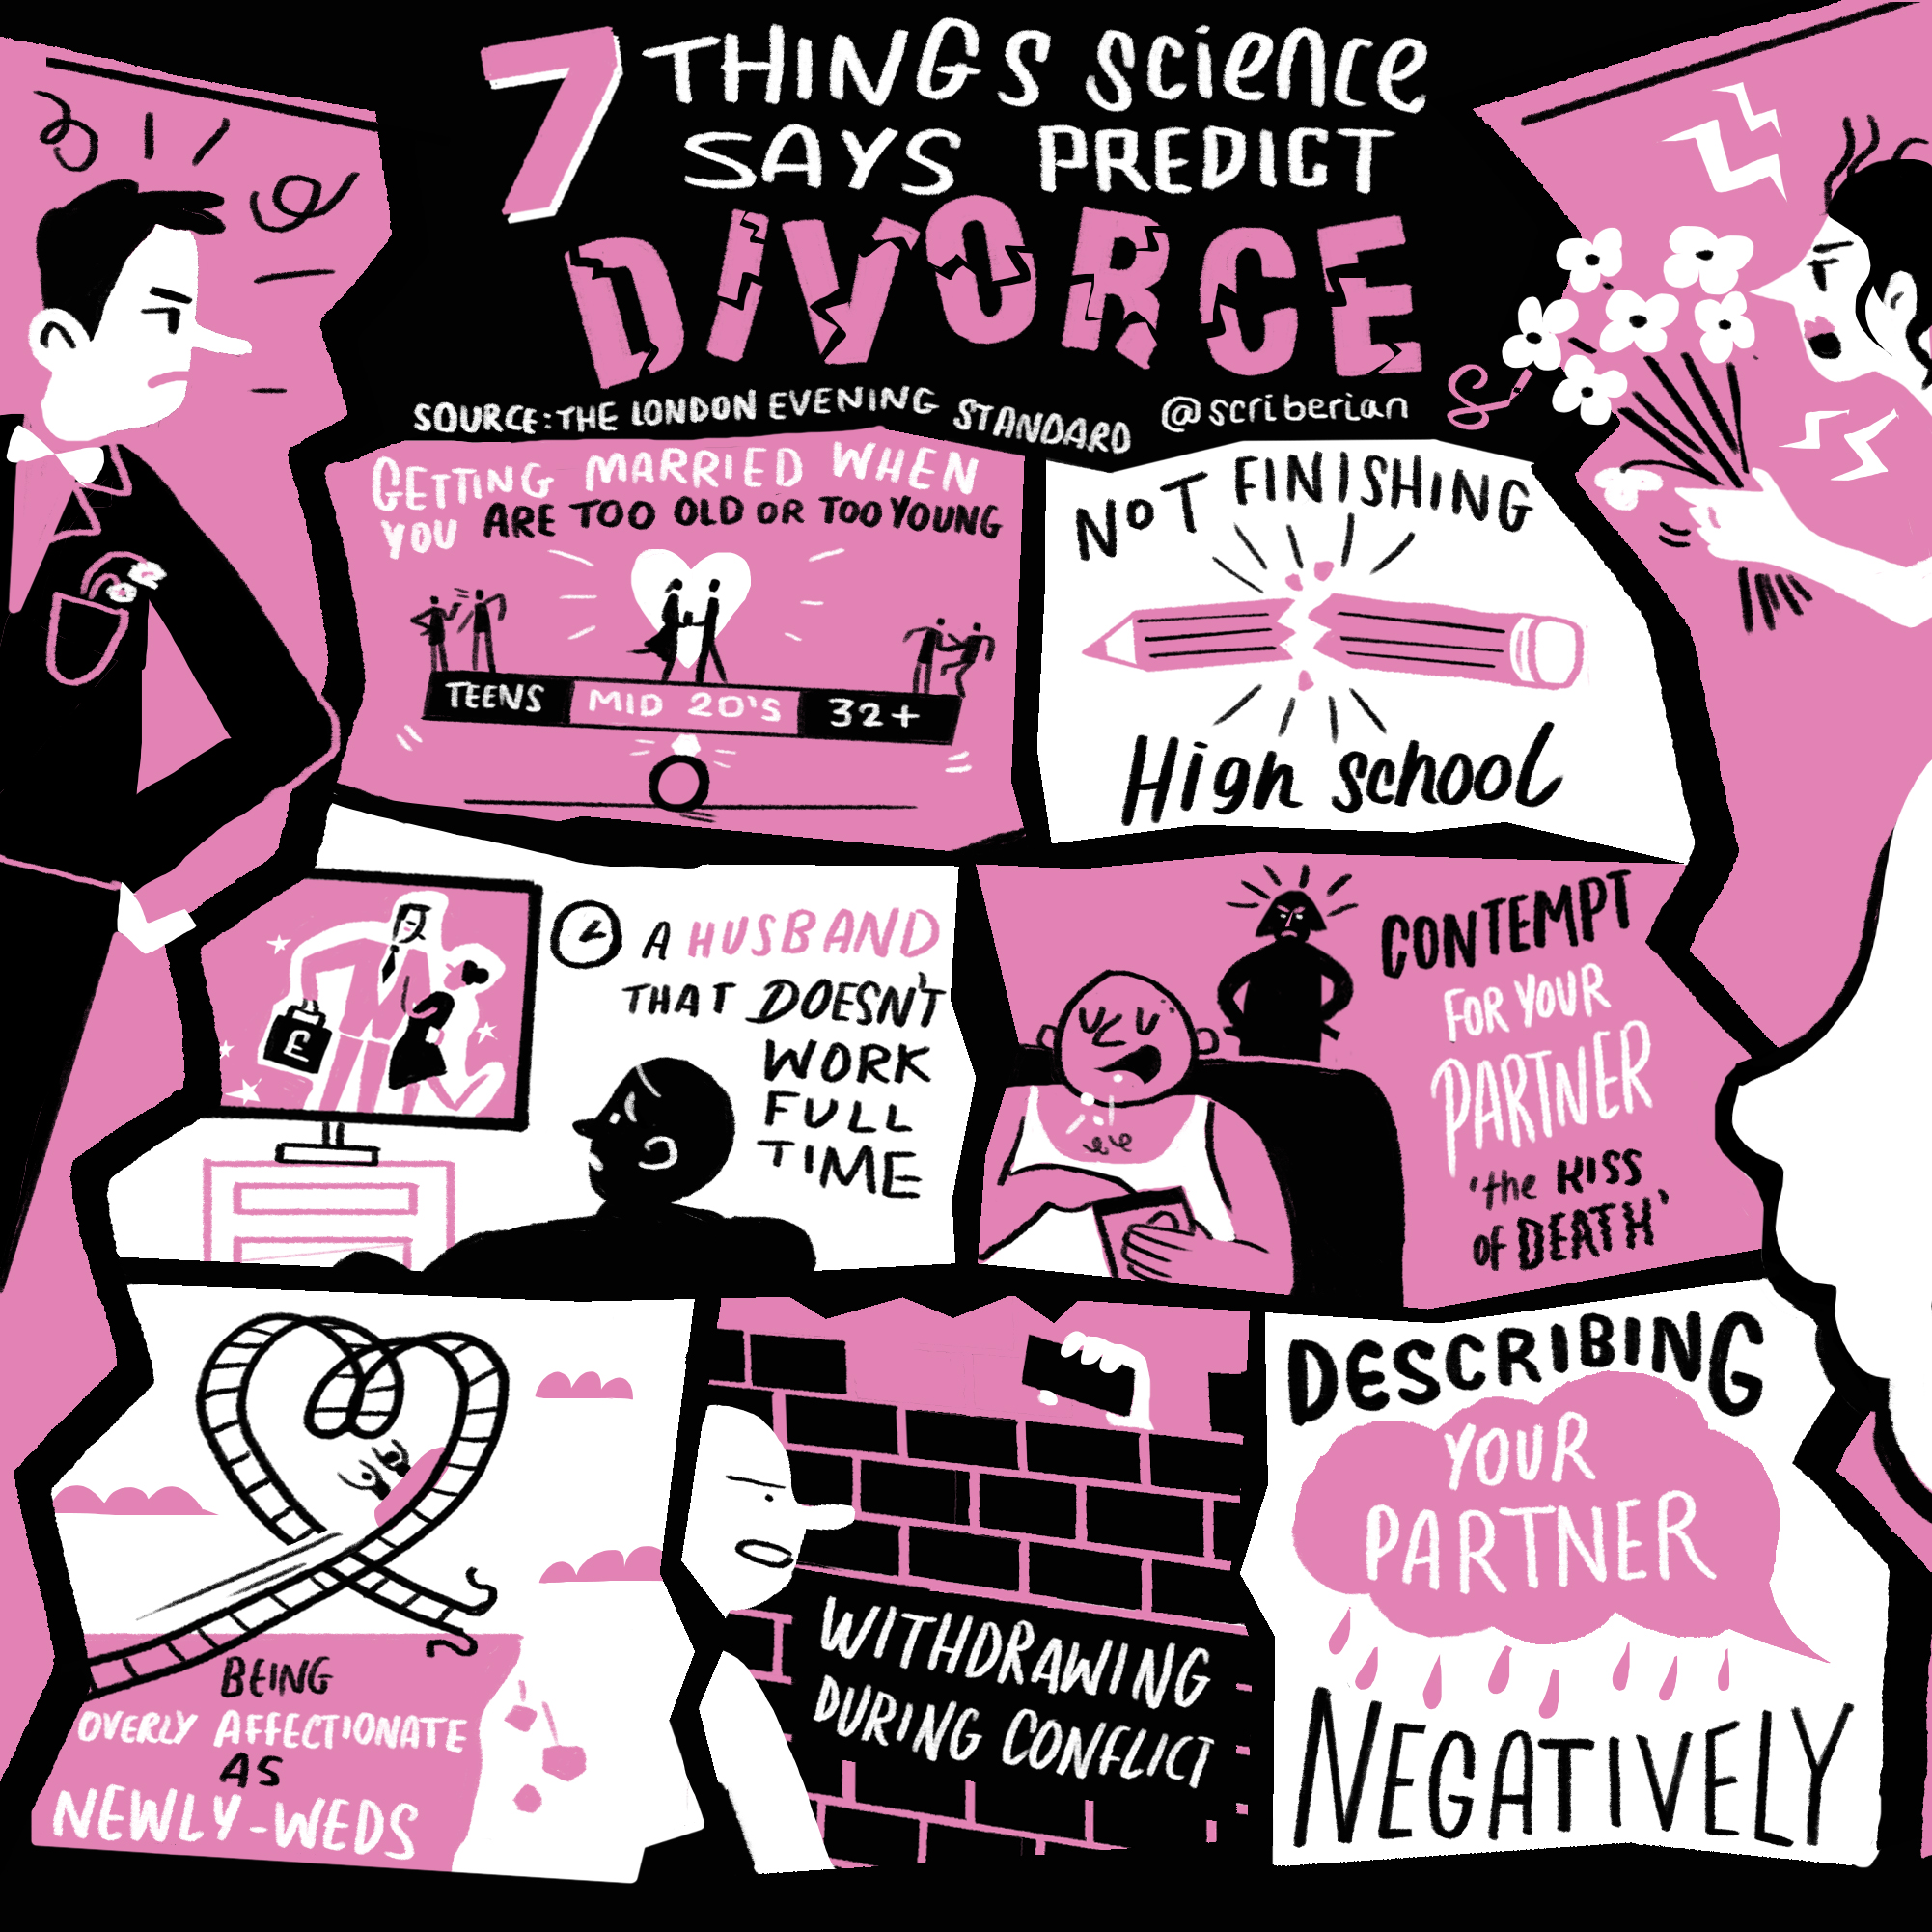 Seven things science says predict divorce, by Shana Lebowitz. Source:  Evening Standard